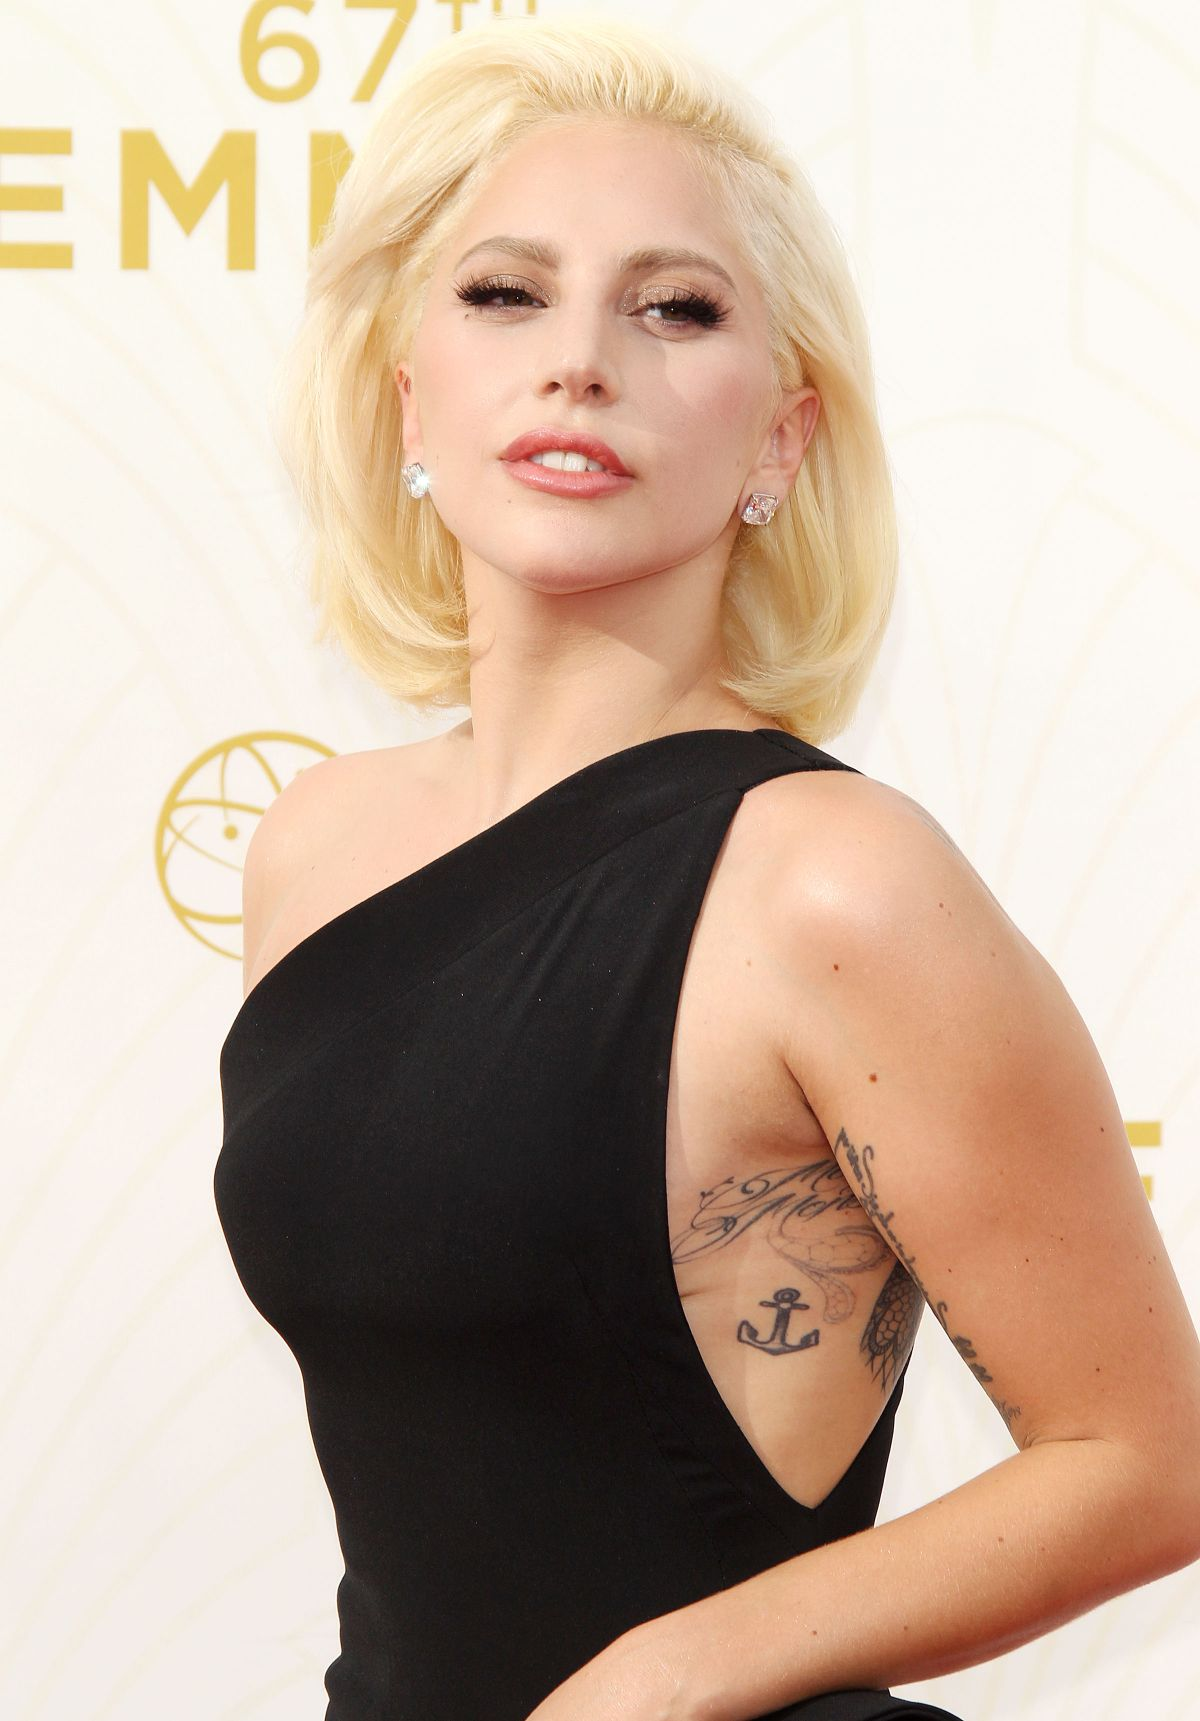 lady gaga - photo #16